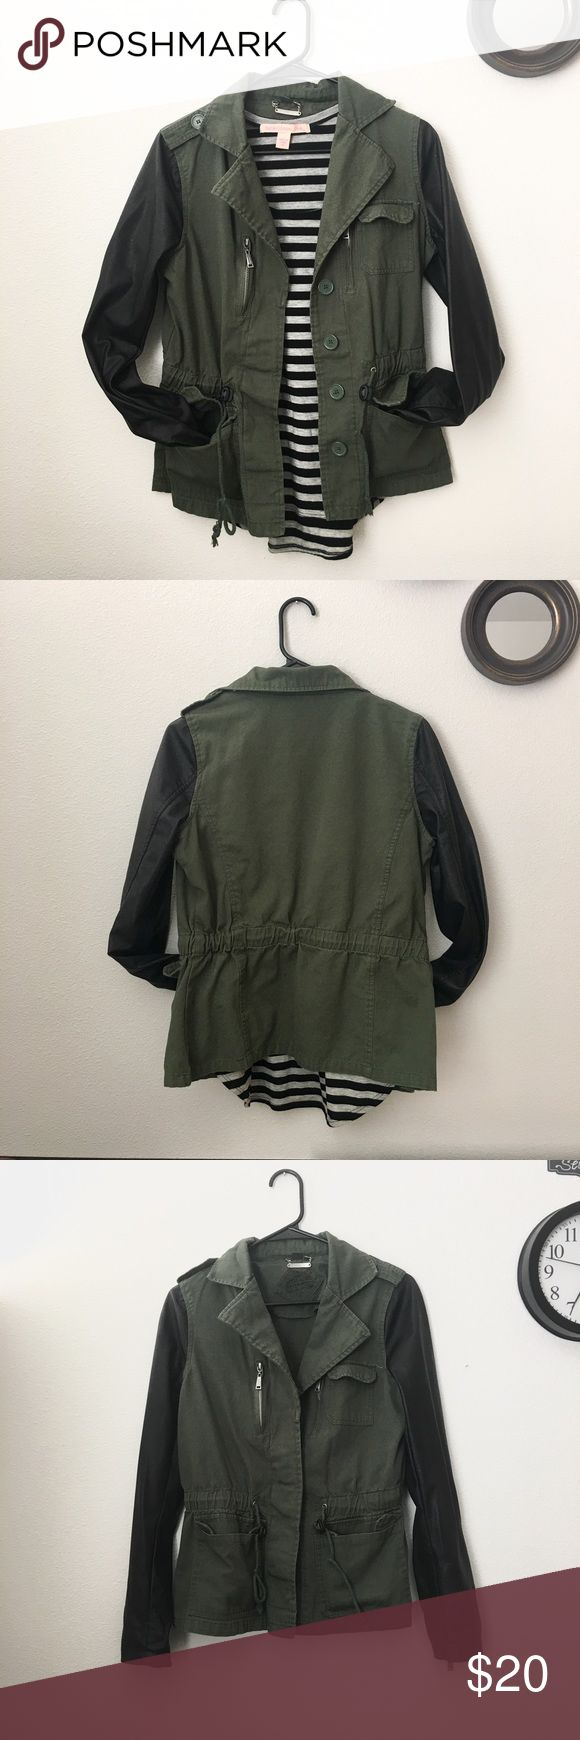 Olive green utility jacket w/ faux leather sleeves Great condition. From TjMaxx. Great for breezy spring weather or fall weather. Jou Jou Jackets & Coats Utility Jackets